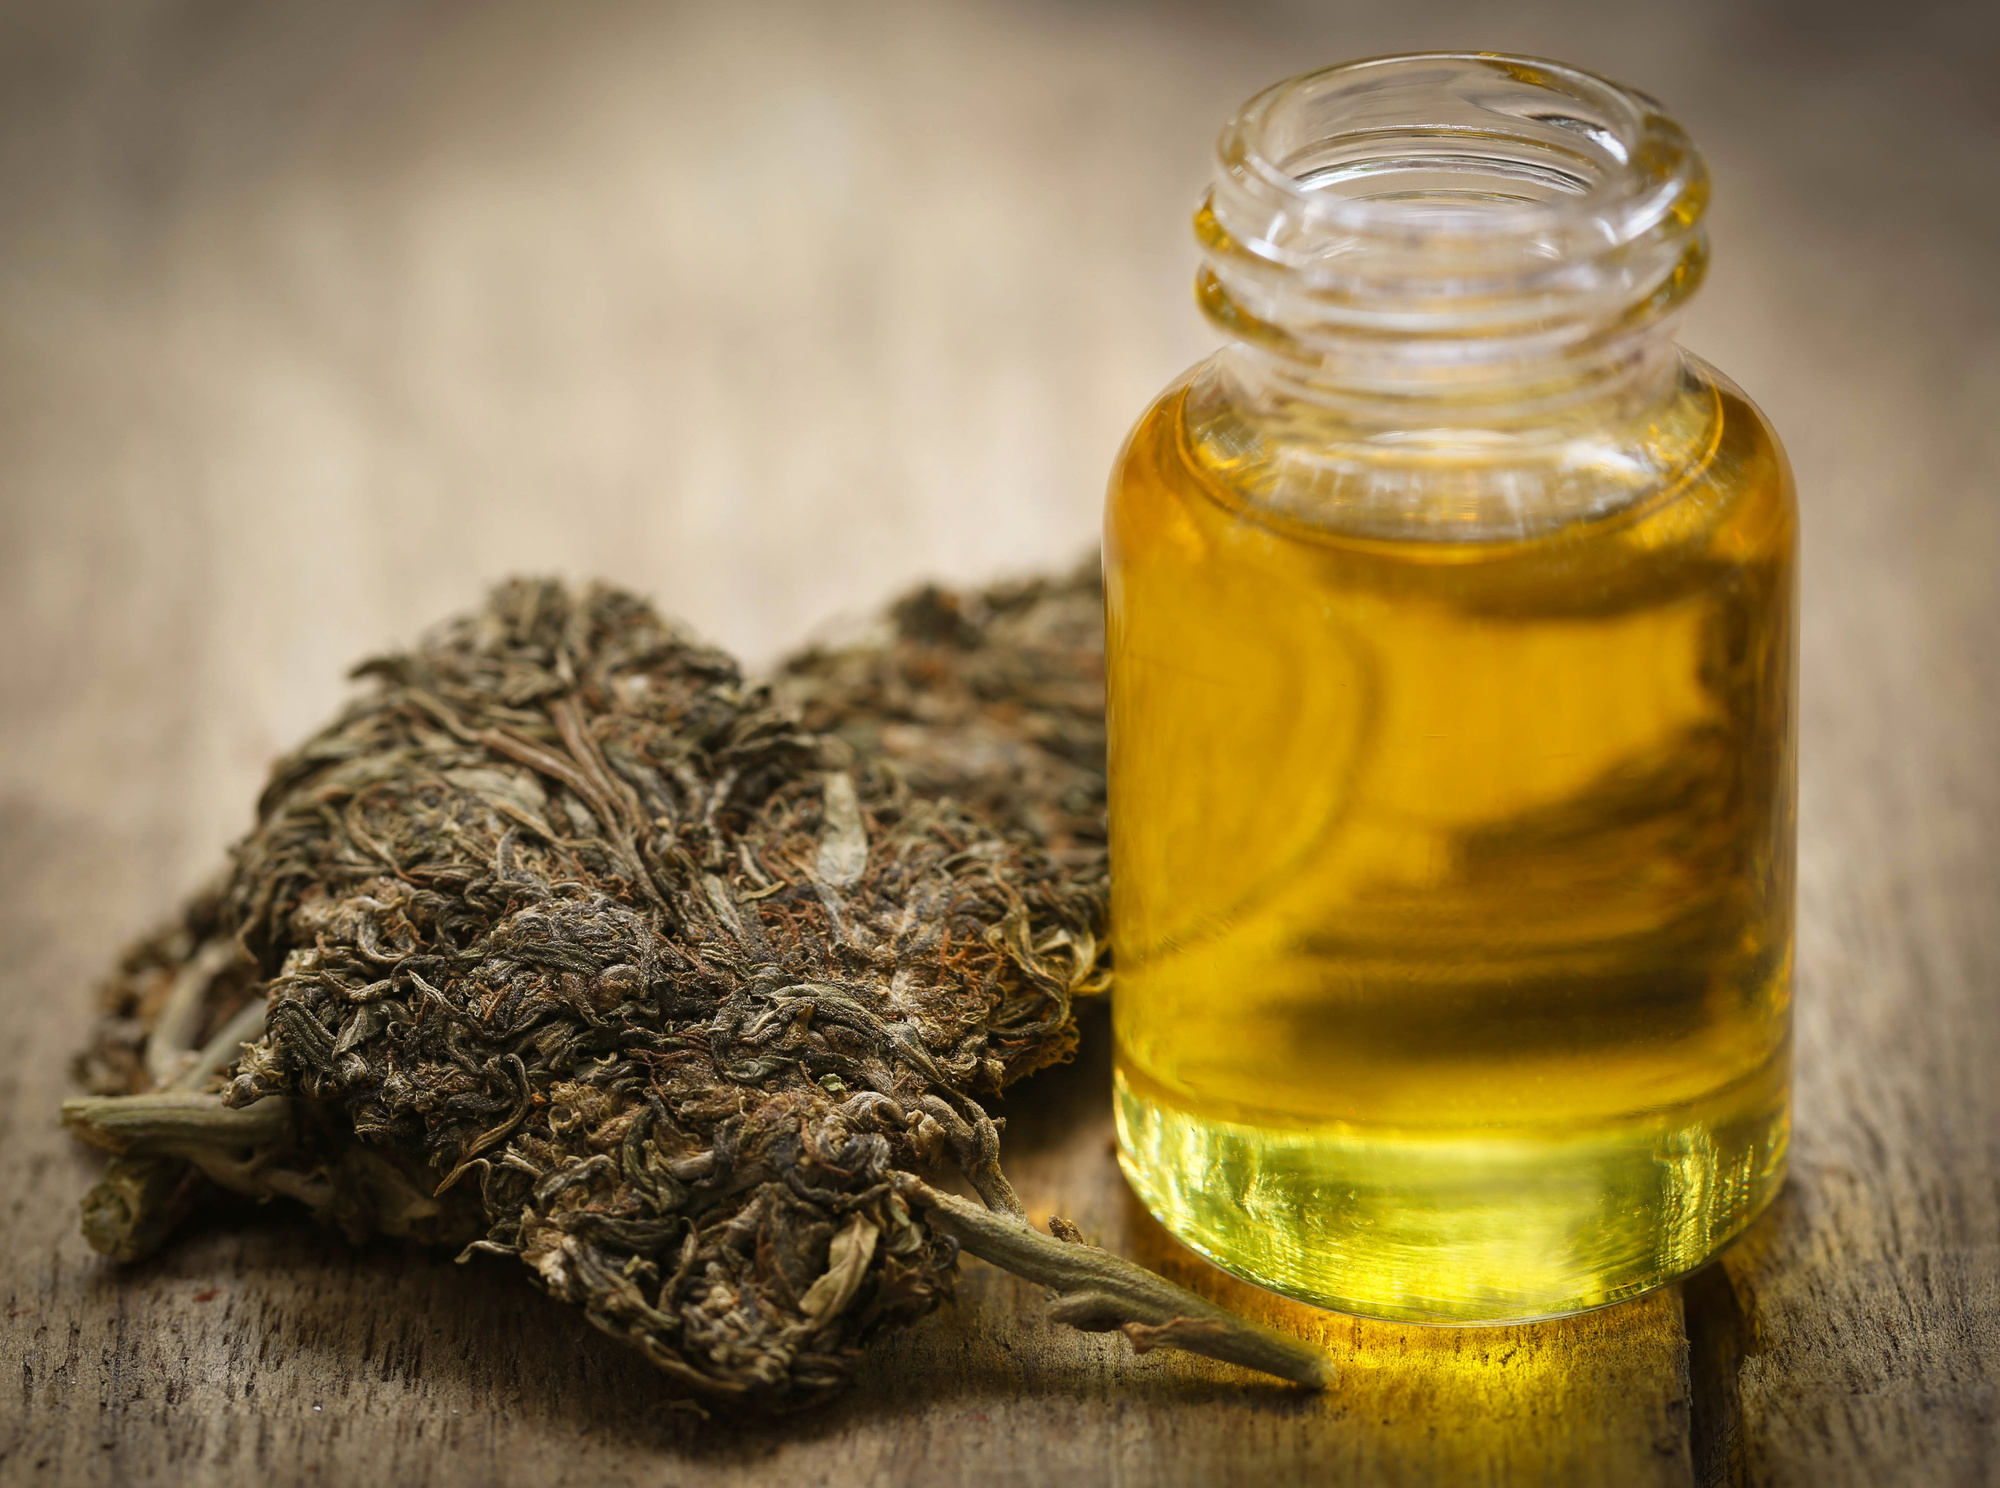 Hemp Oil Affiliate Programs - What are the Best Hemp Oil Affiliate Programs?